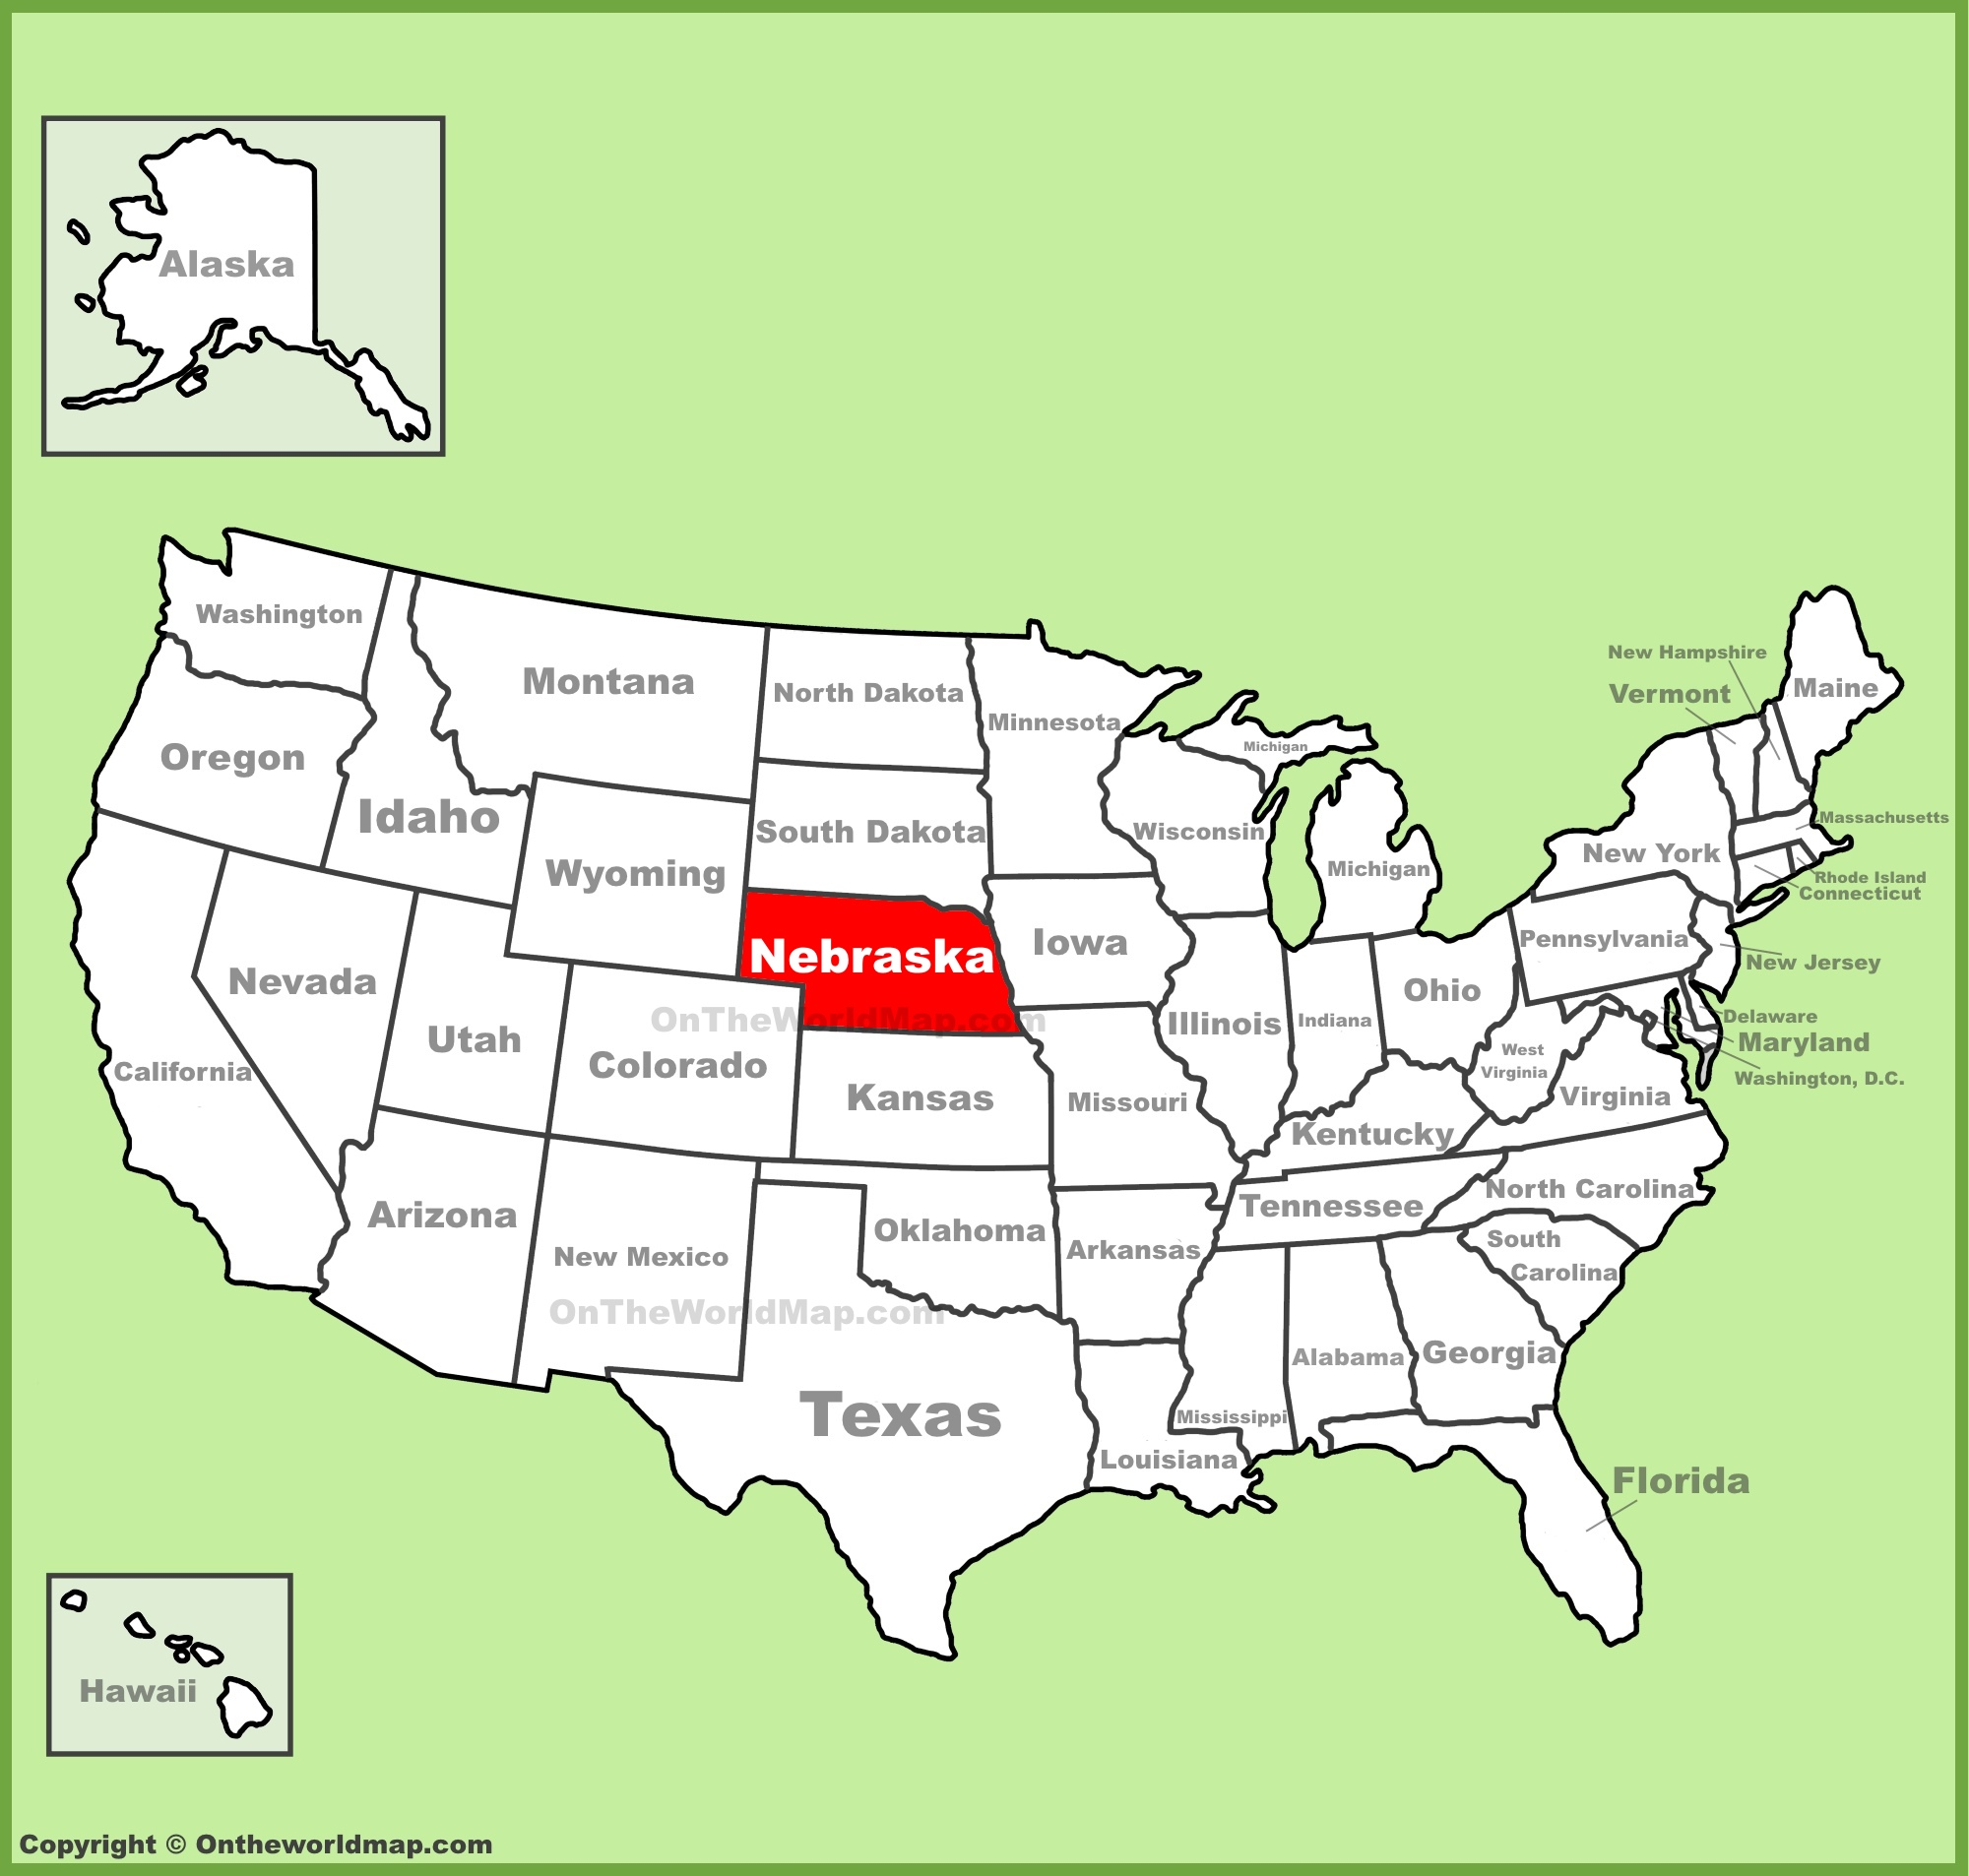 Nebraska Location On The US Map - Nebraska us map